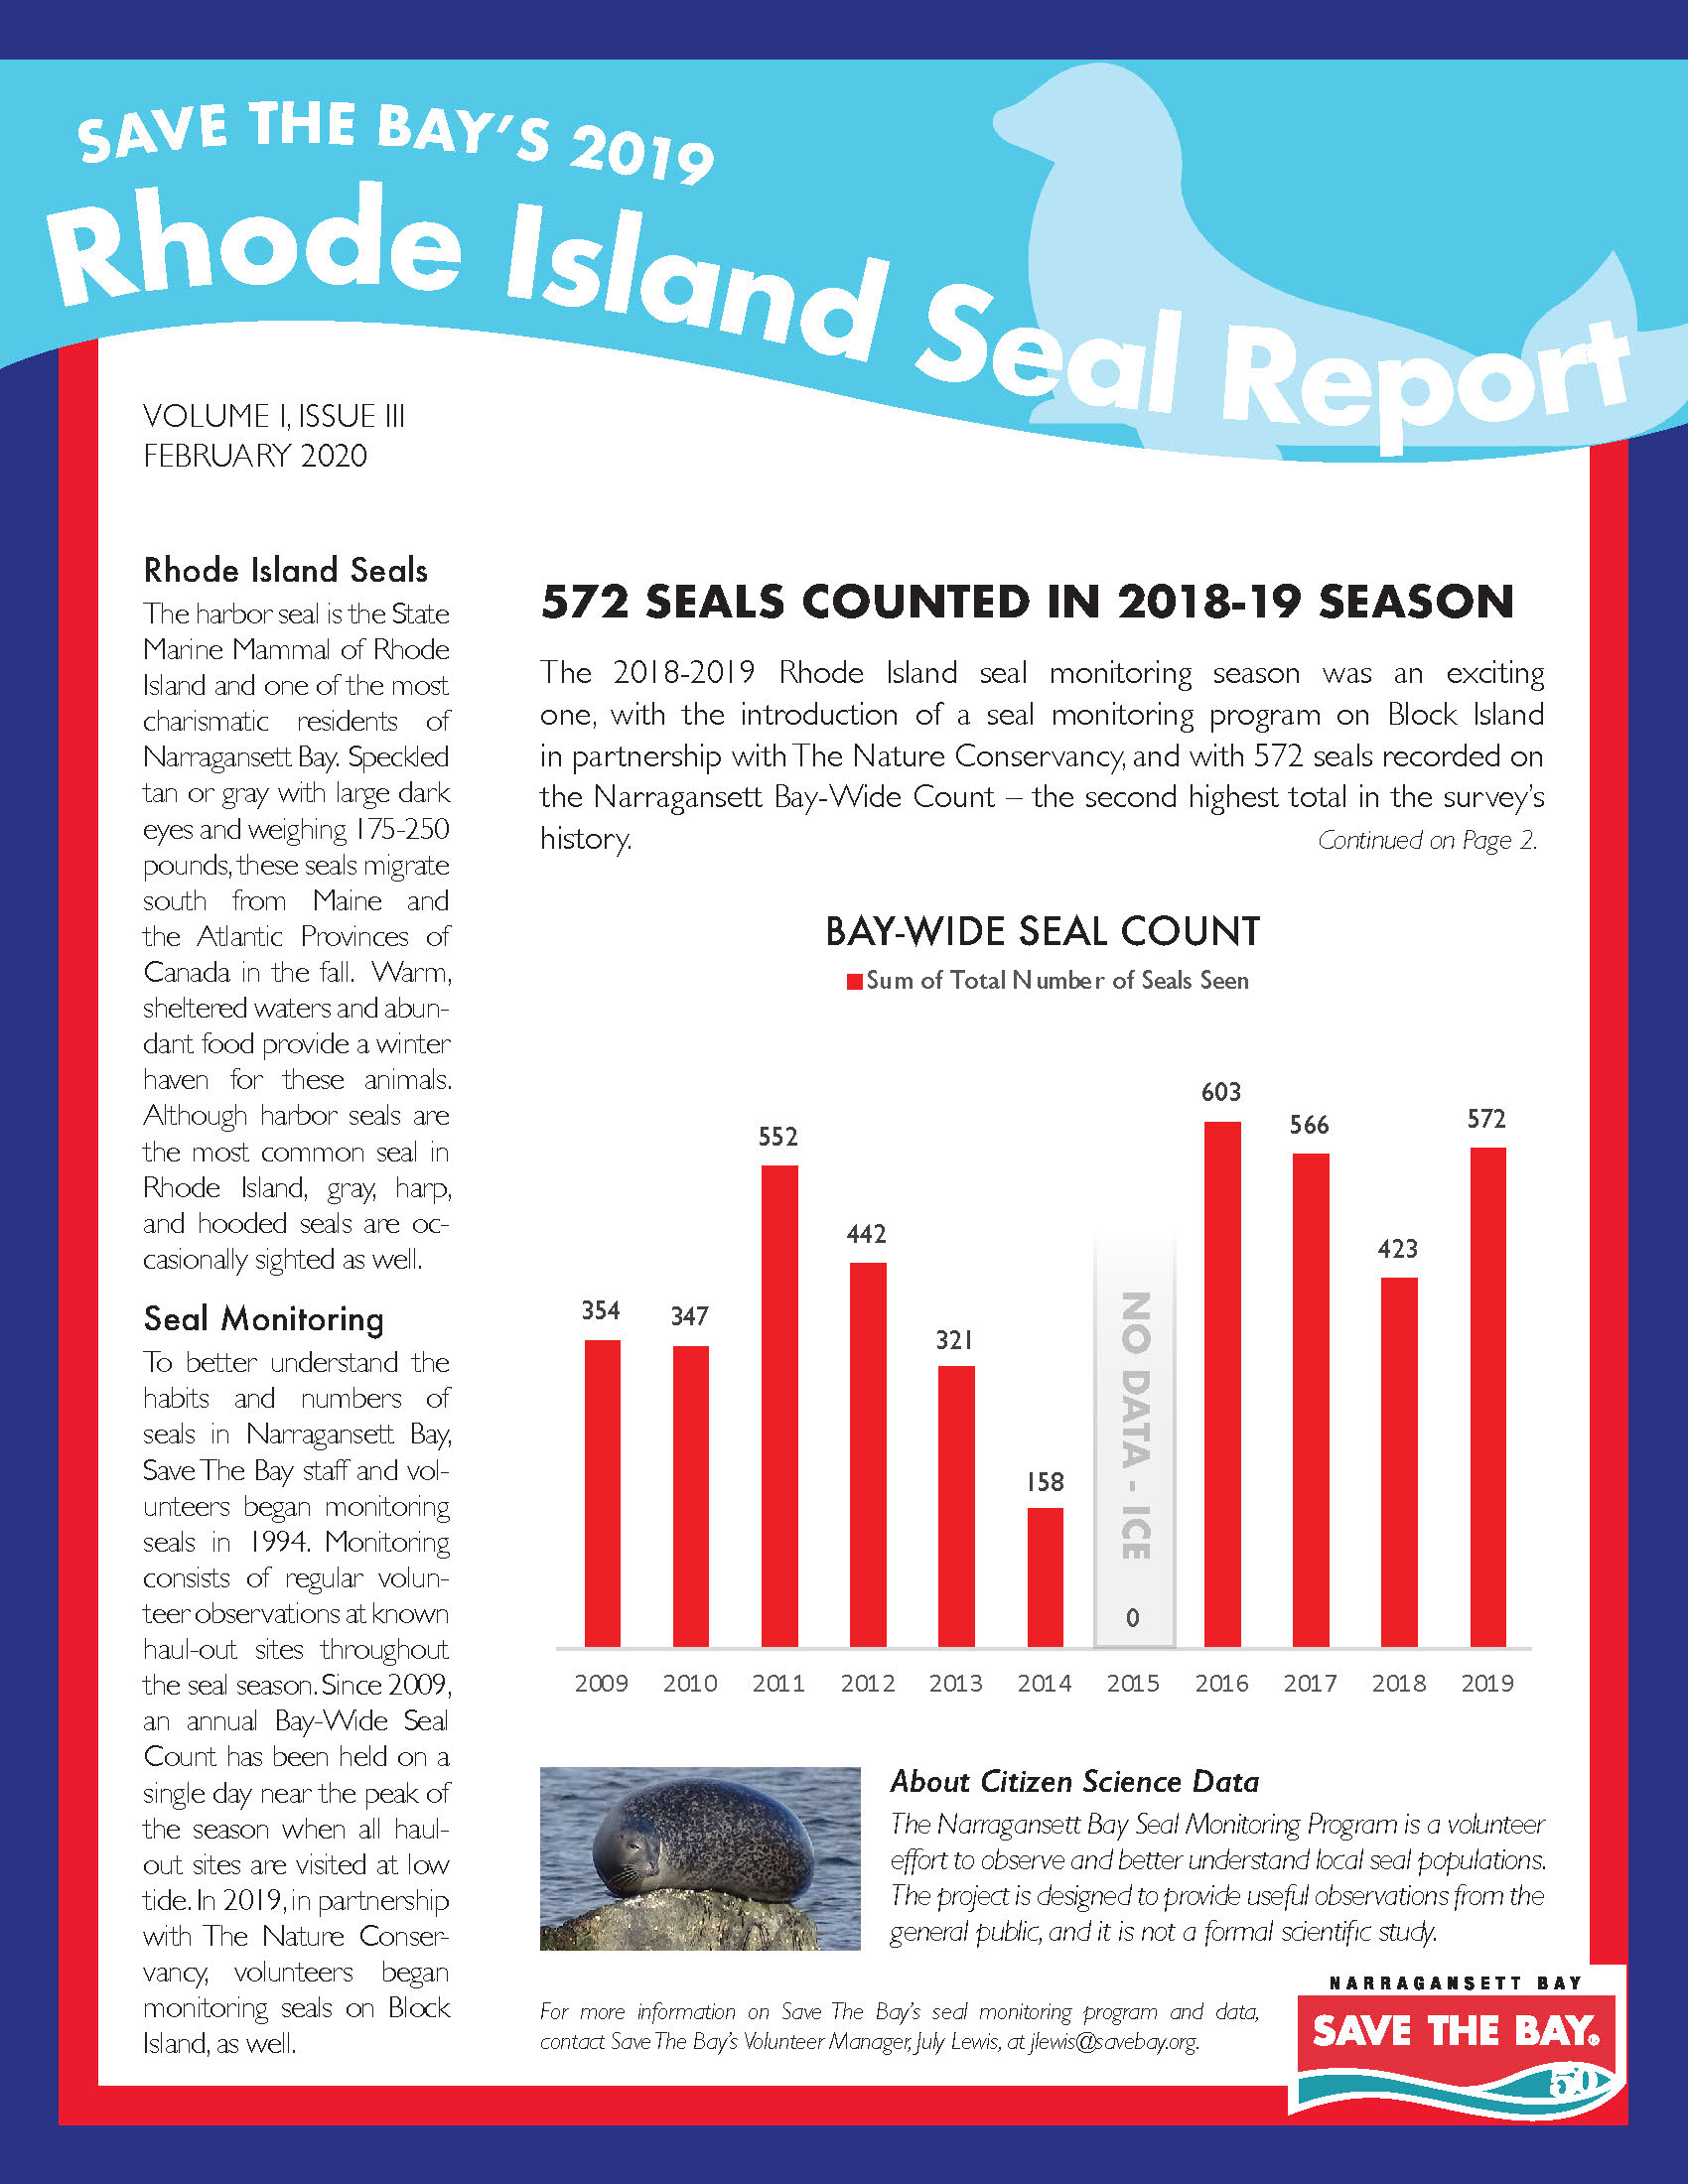 The cover page of the 2019 Narragansett Bay Seal Monitoring Report